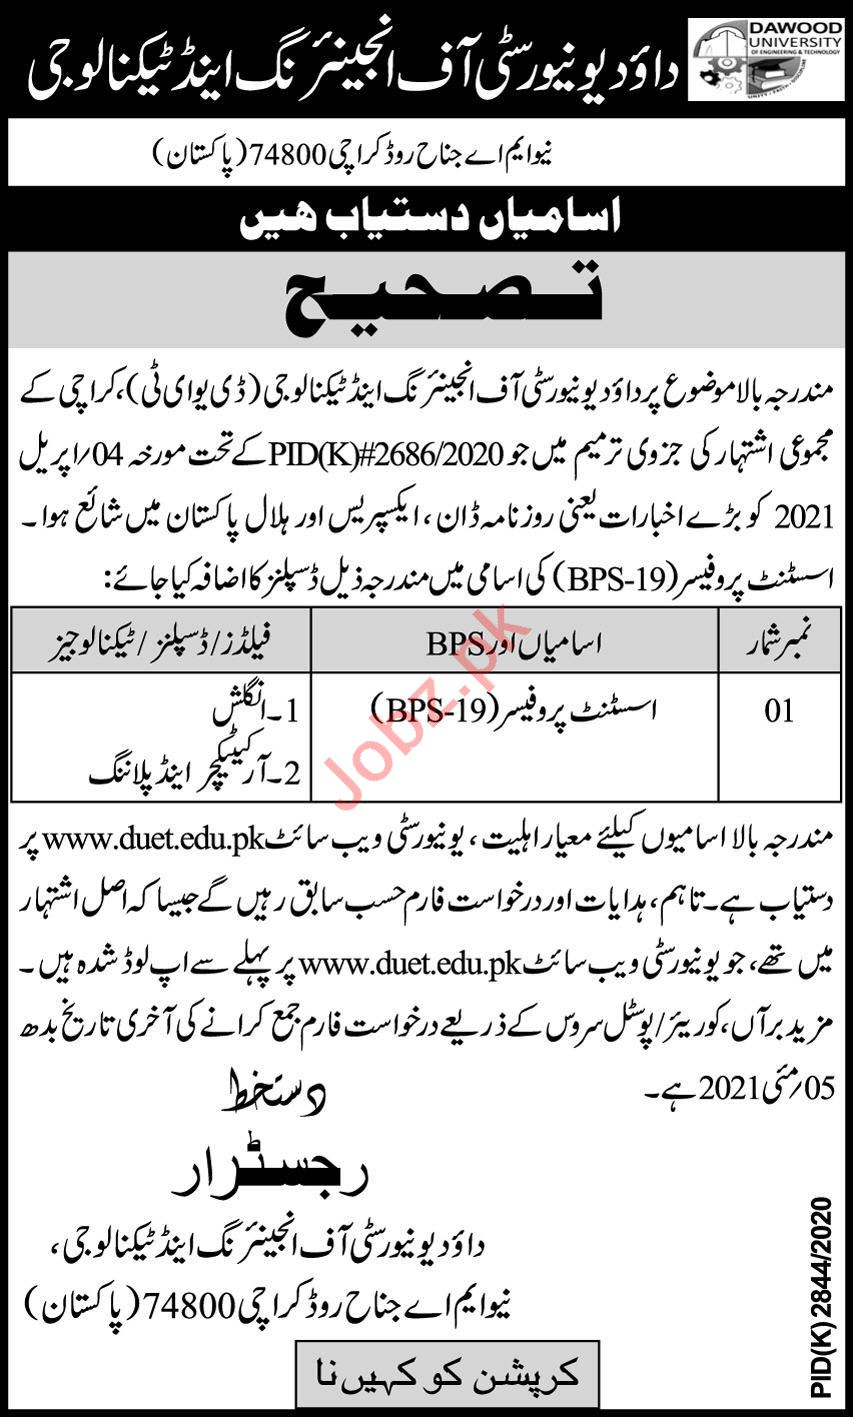 Dawood University of Engineering & Technology Faculty Jobs